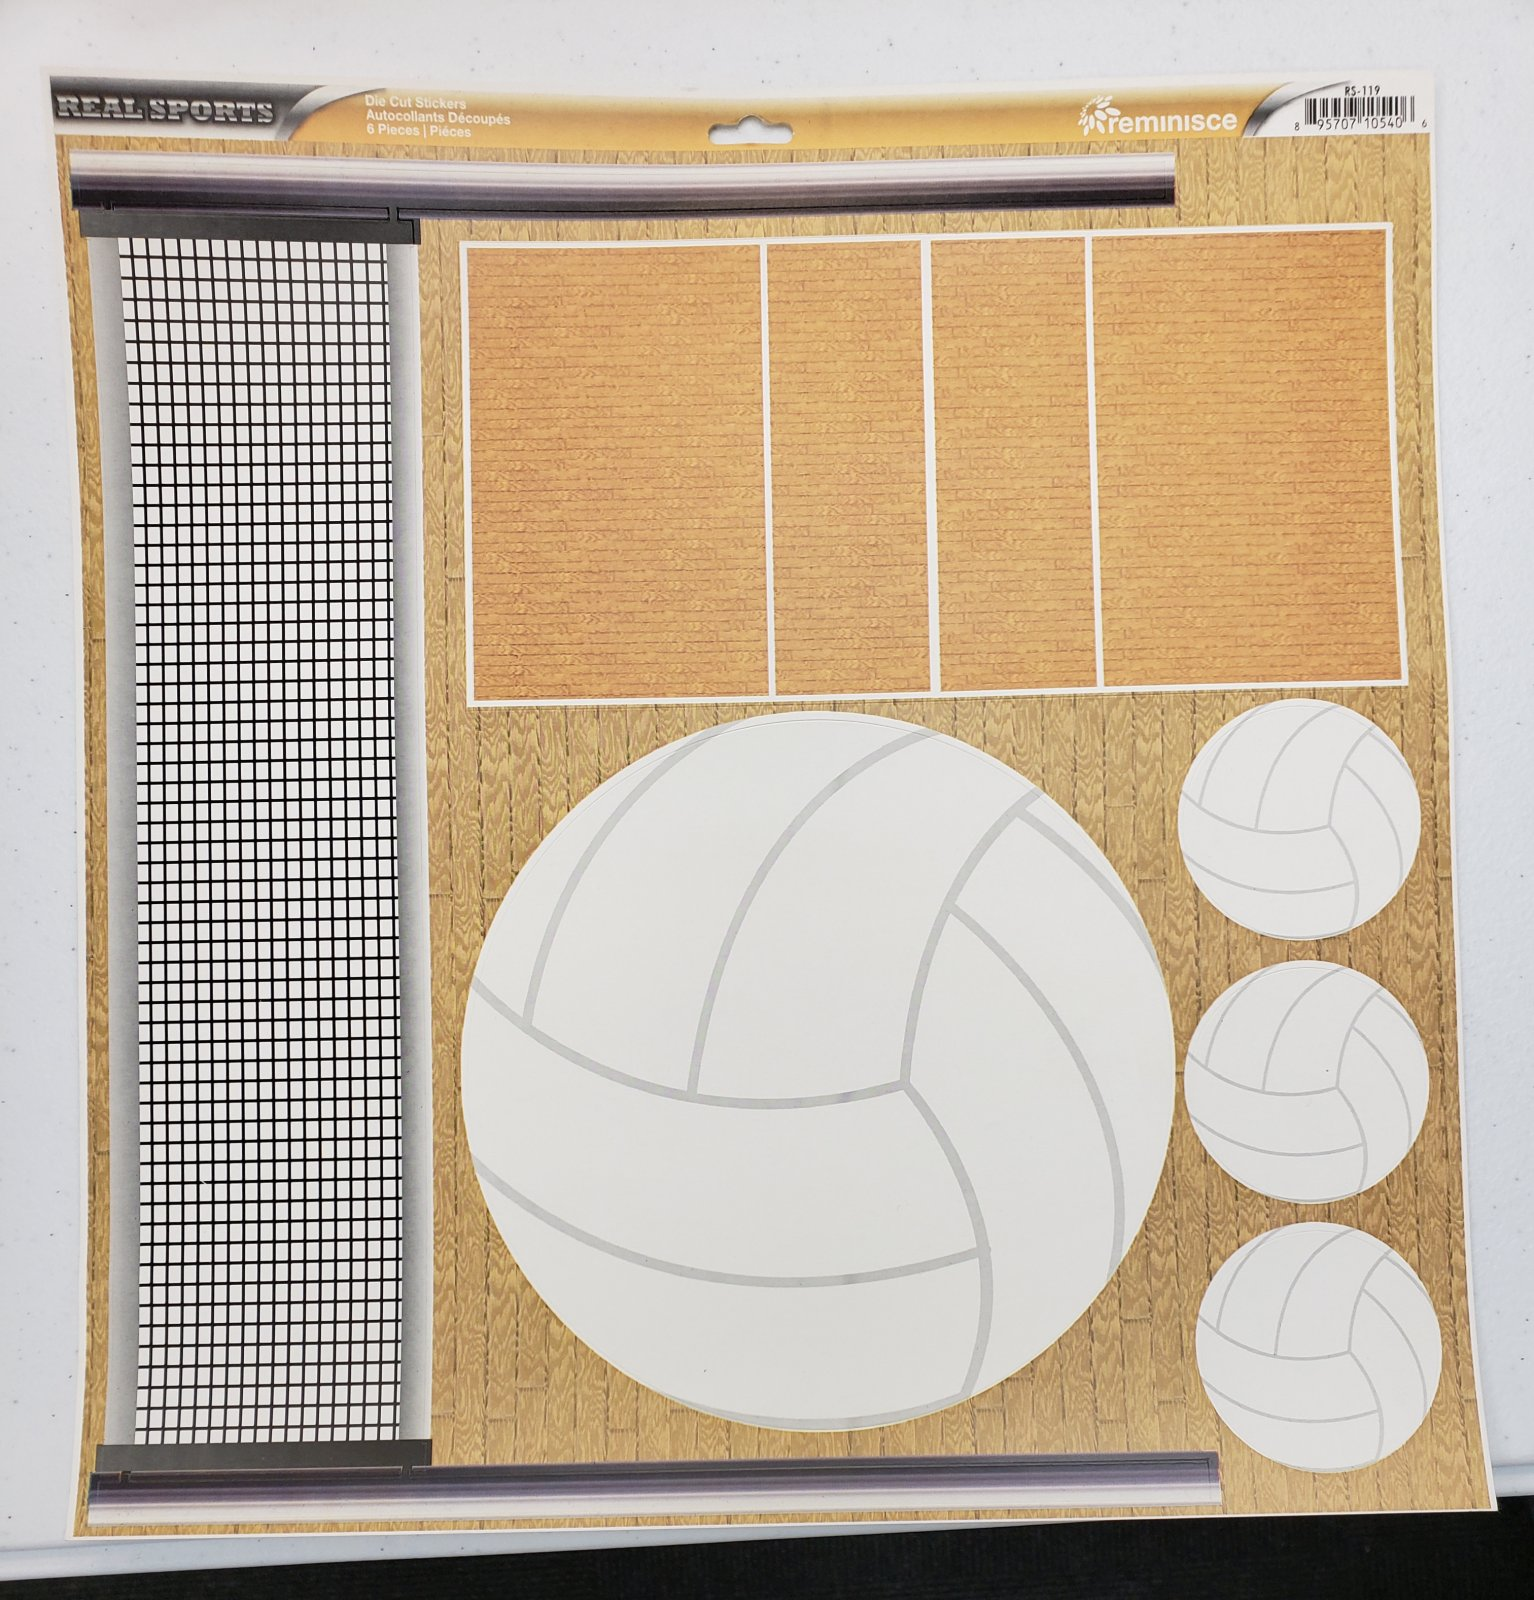 Reminisce Volleyball 12x12